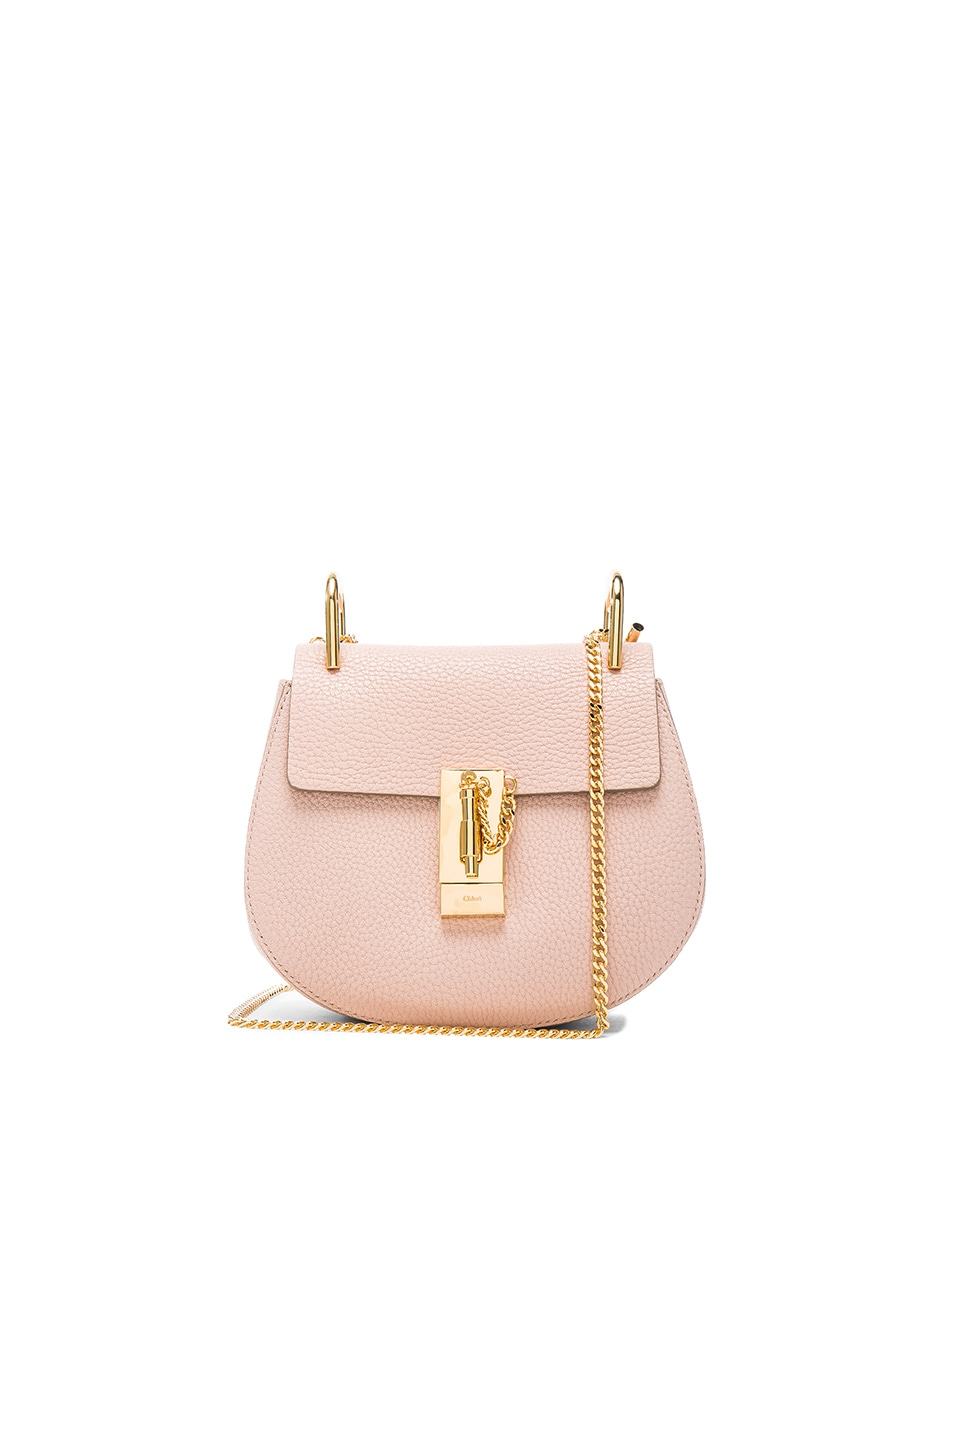 09753cf2a4ba4 Image 1 of Chloe Mini Drew Leather Shoulder Bag in Cement Pink